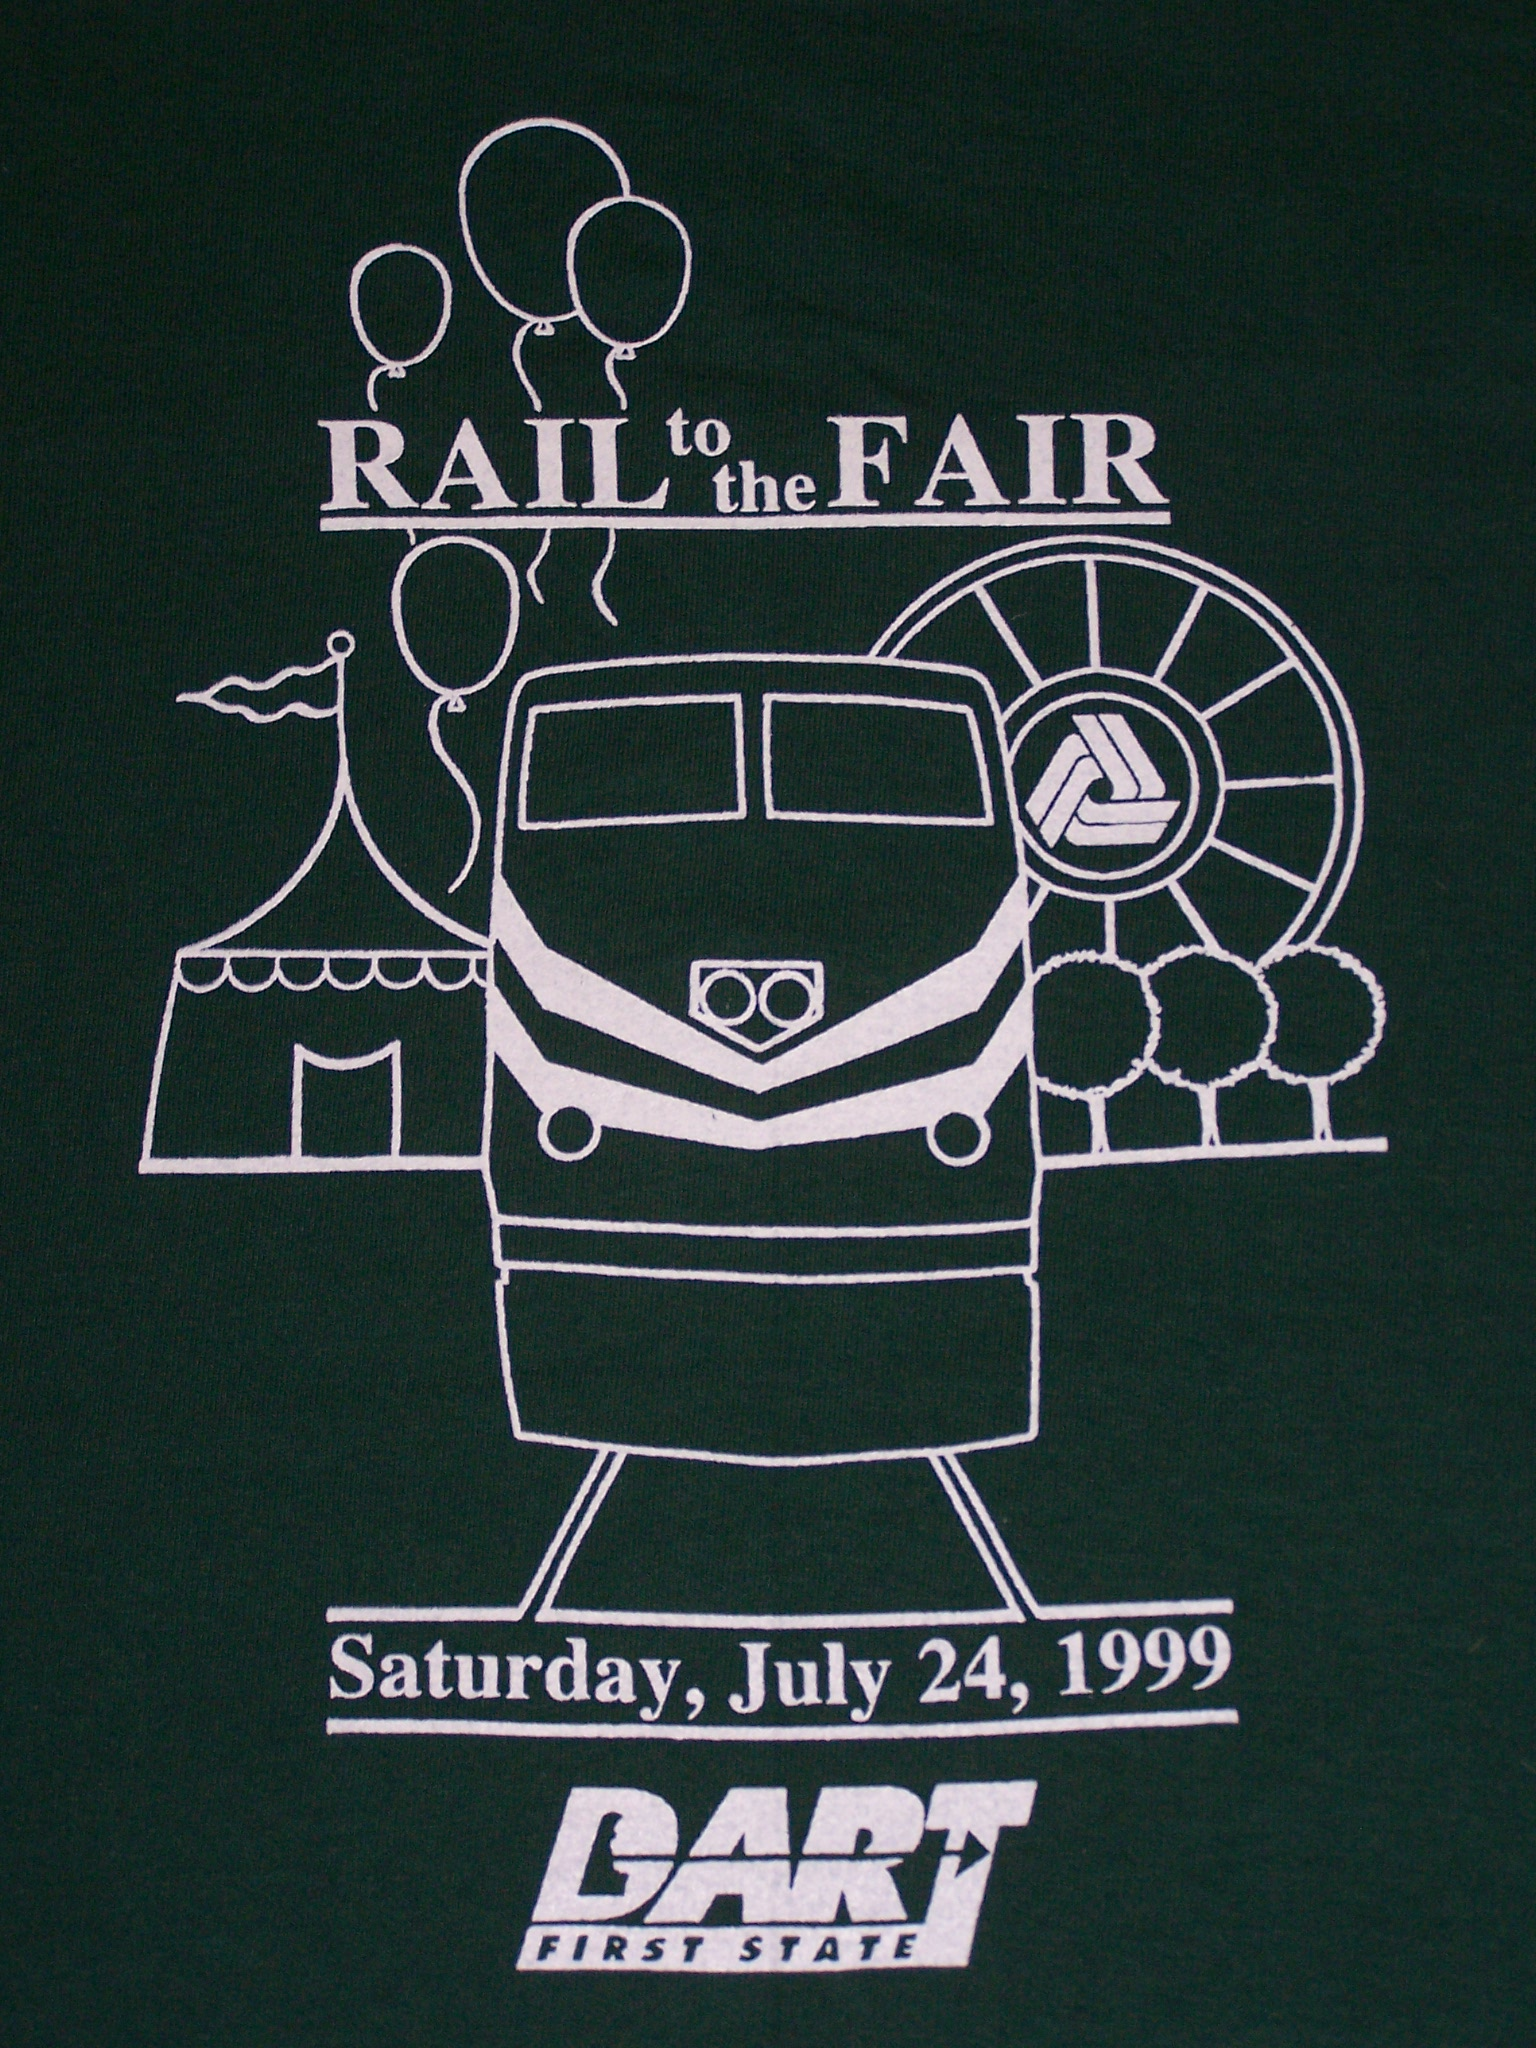 1999 Rail to the Fair tee shirt